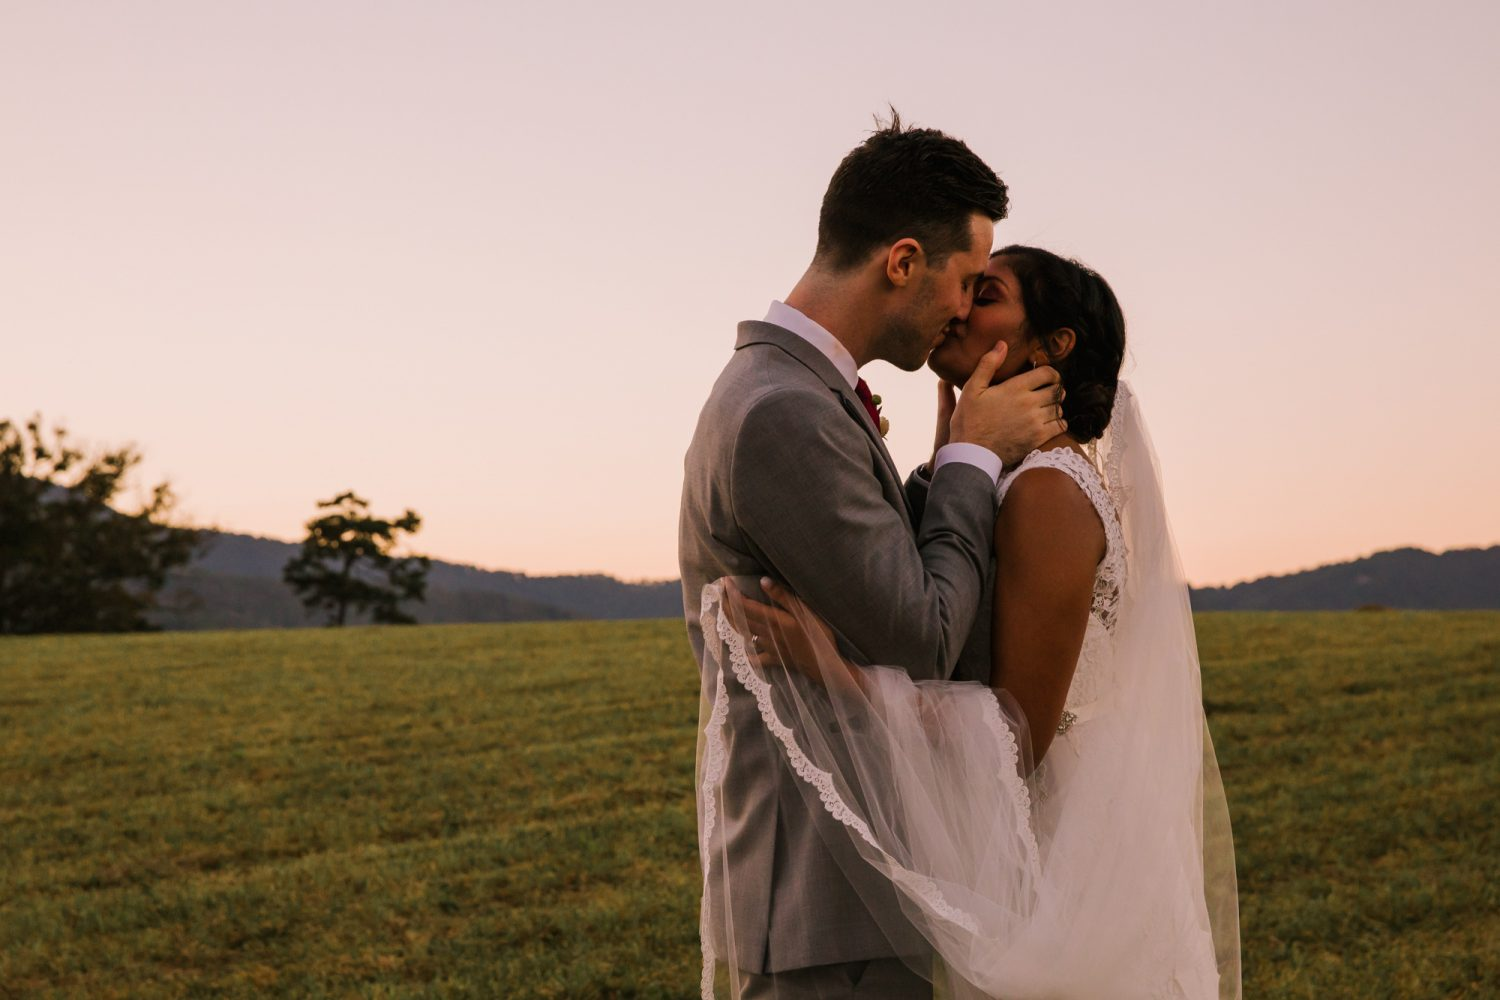 Waynesville NC Wedding Photography | Bride and Groom Kissing at Sunset